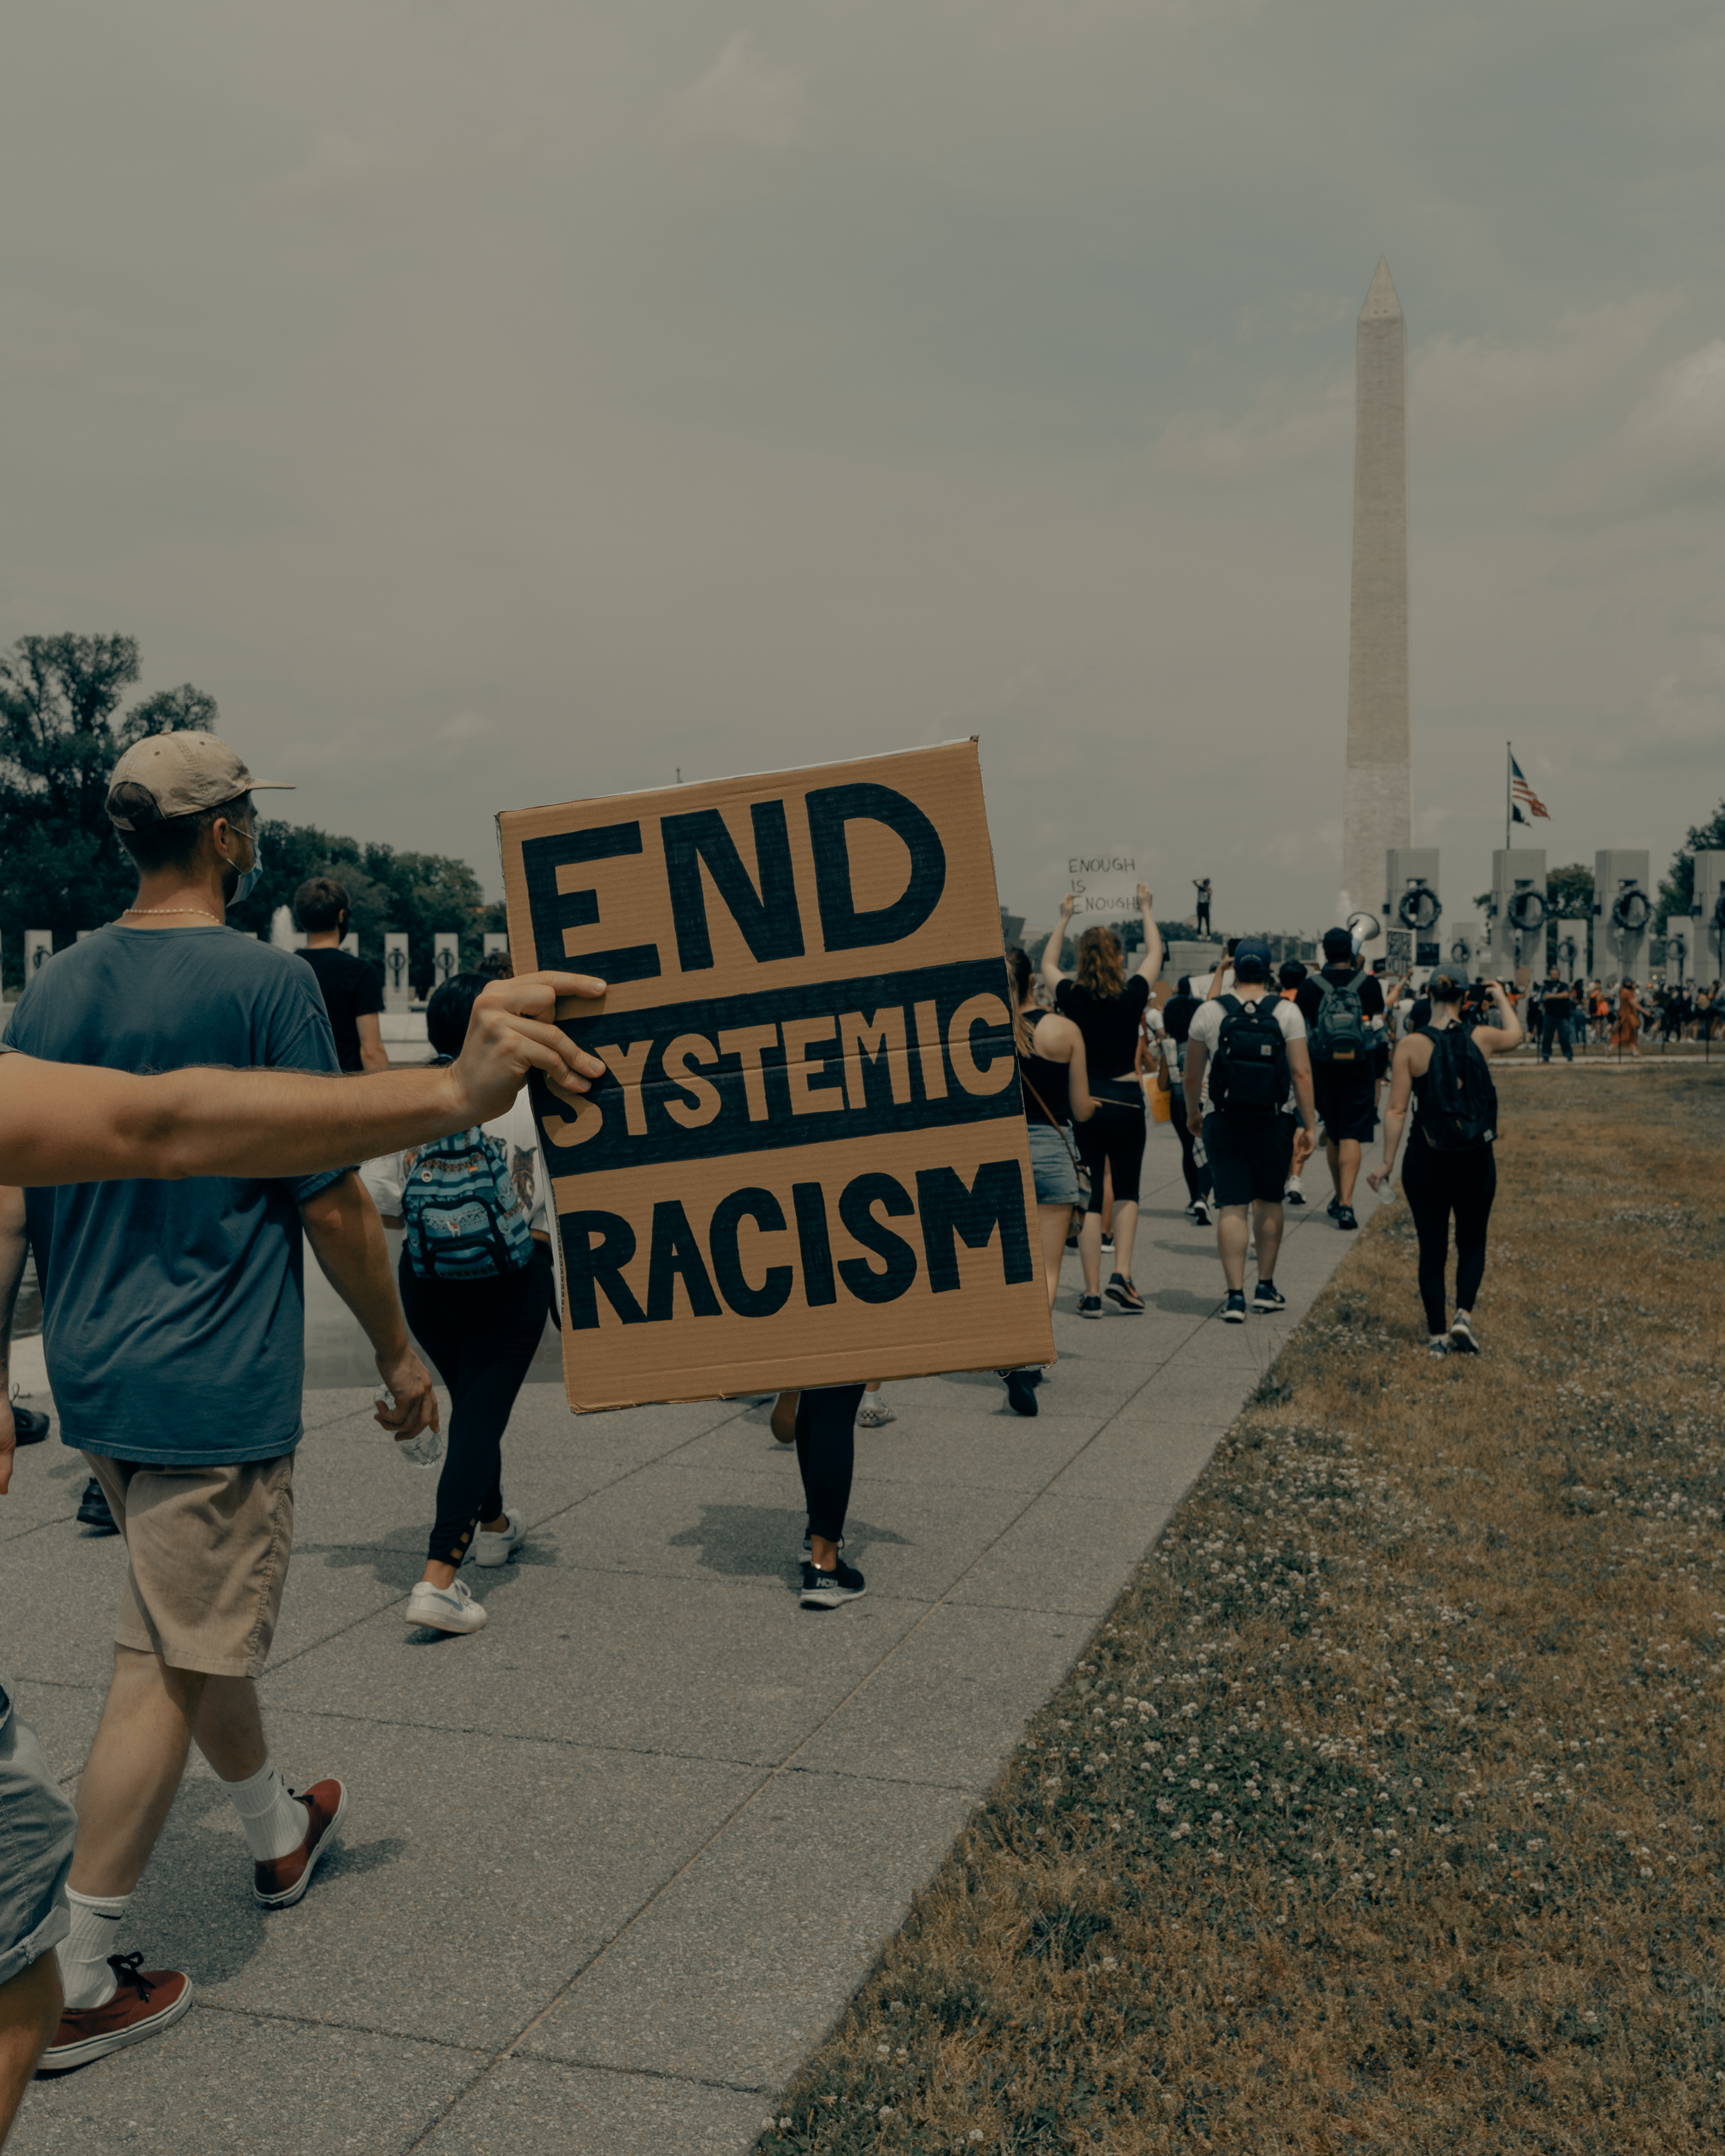 Three Good Looks at Systemic Racism